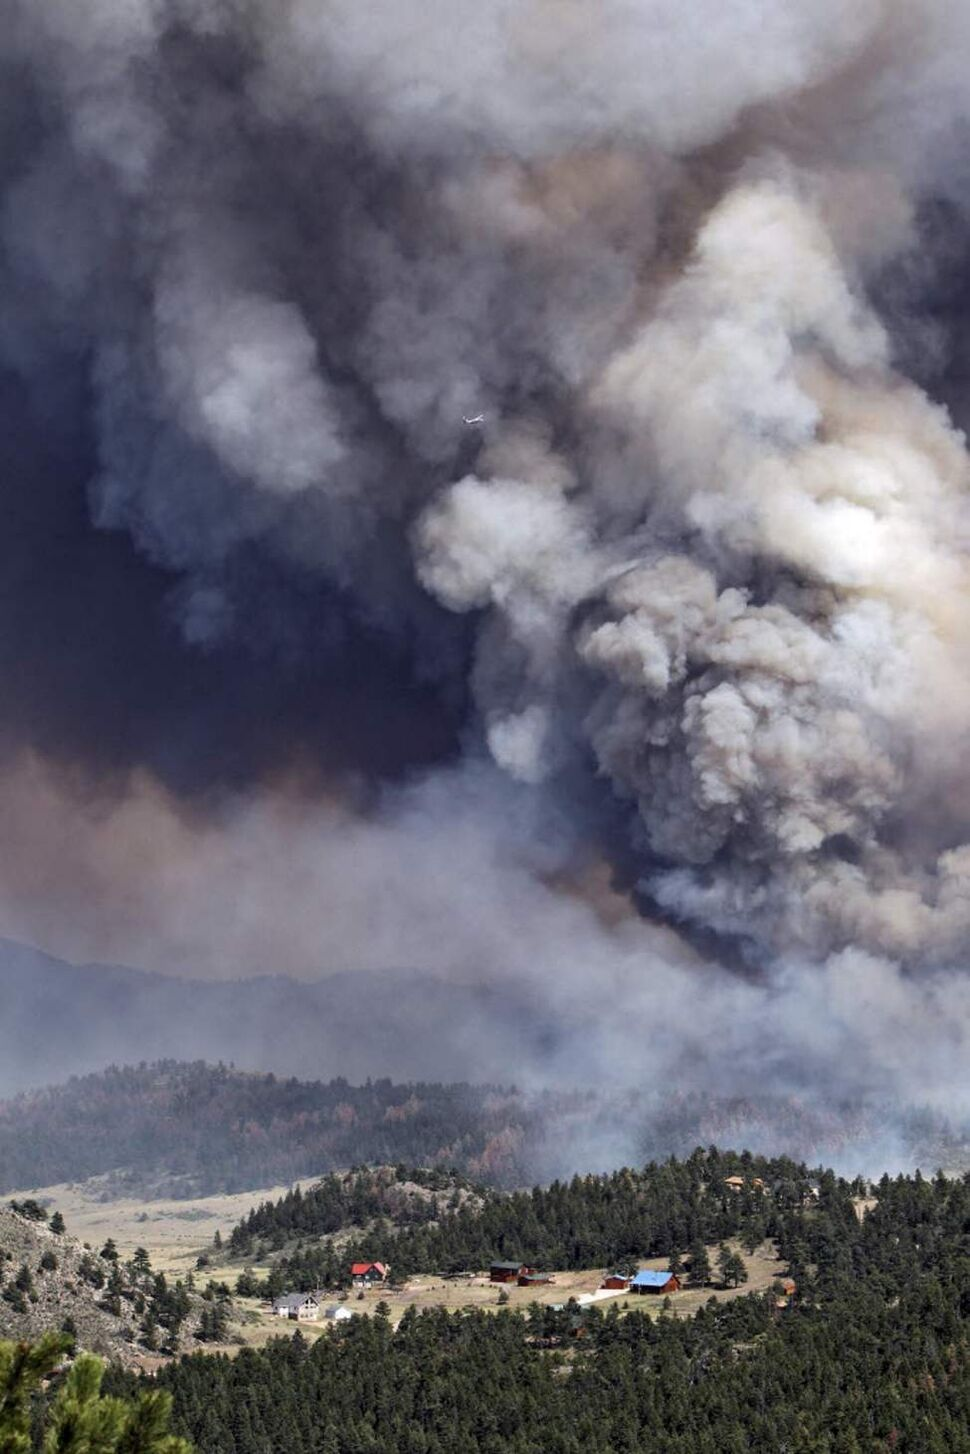 Fire burns behind homes north of Poudre Canyon in the Glacier View area near Livermore, Colo. The fire is burning on more than 68,000 acres west of Fort Collins and has destroyed at least 189 homes (AP Photo/Ed Andrieski)